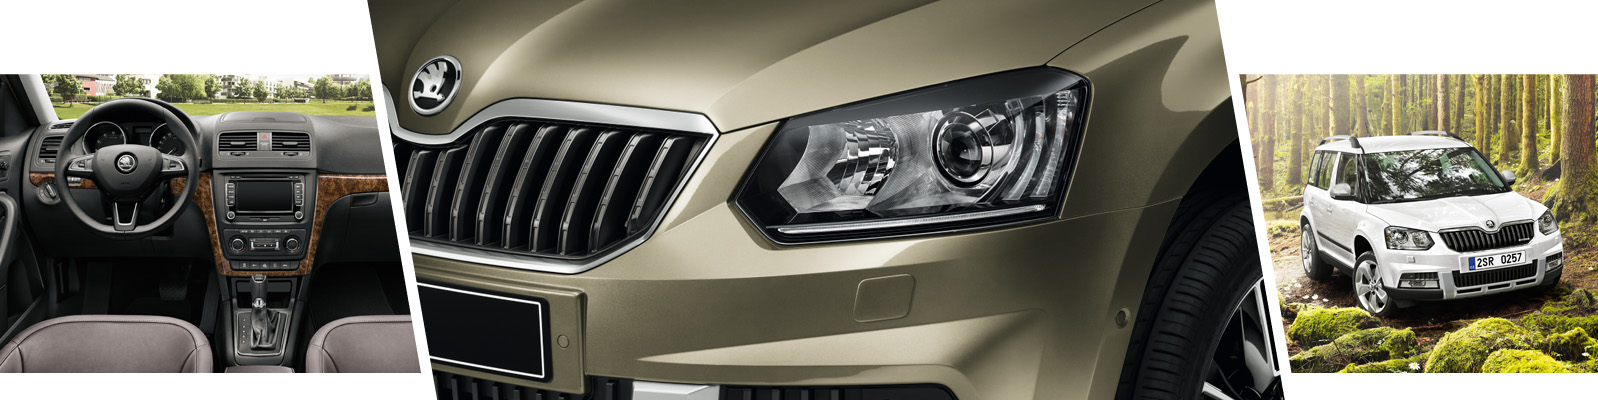 Drive your next adventure with the new SKODA Yeti Outdoor 4x4 SUV From Bickerton ŠKODA, Sheffield, South Yorkshire.